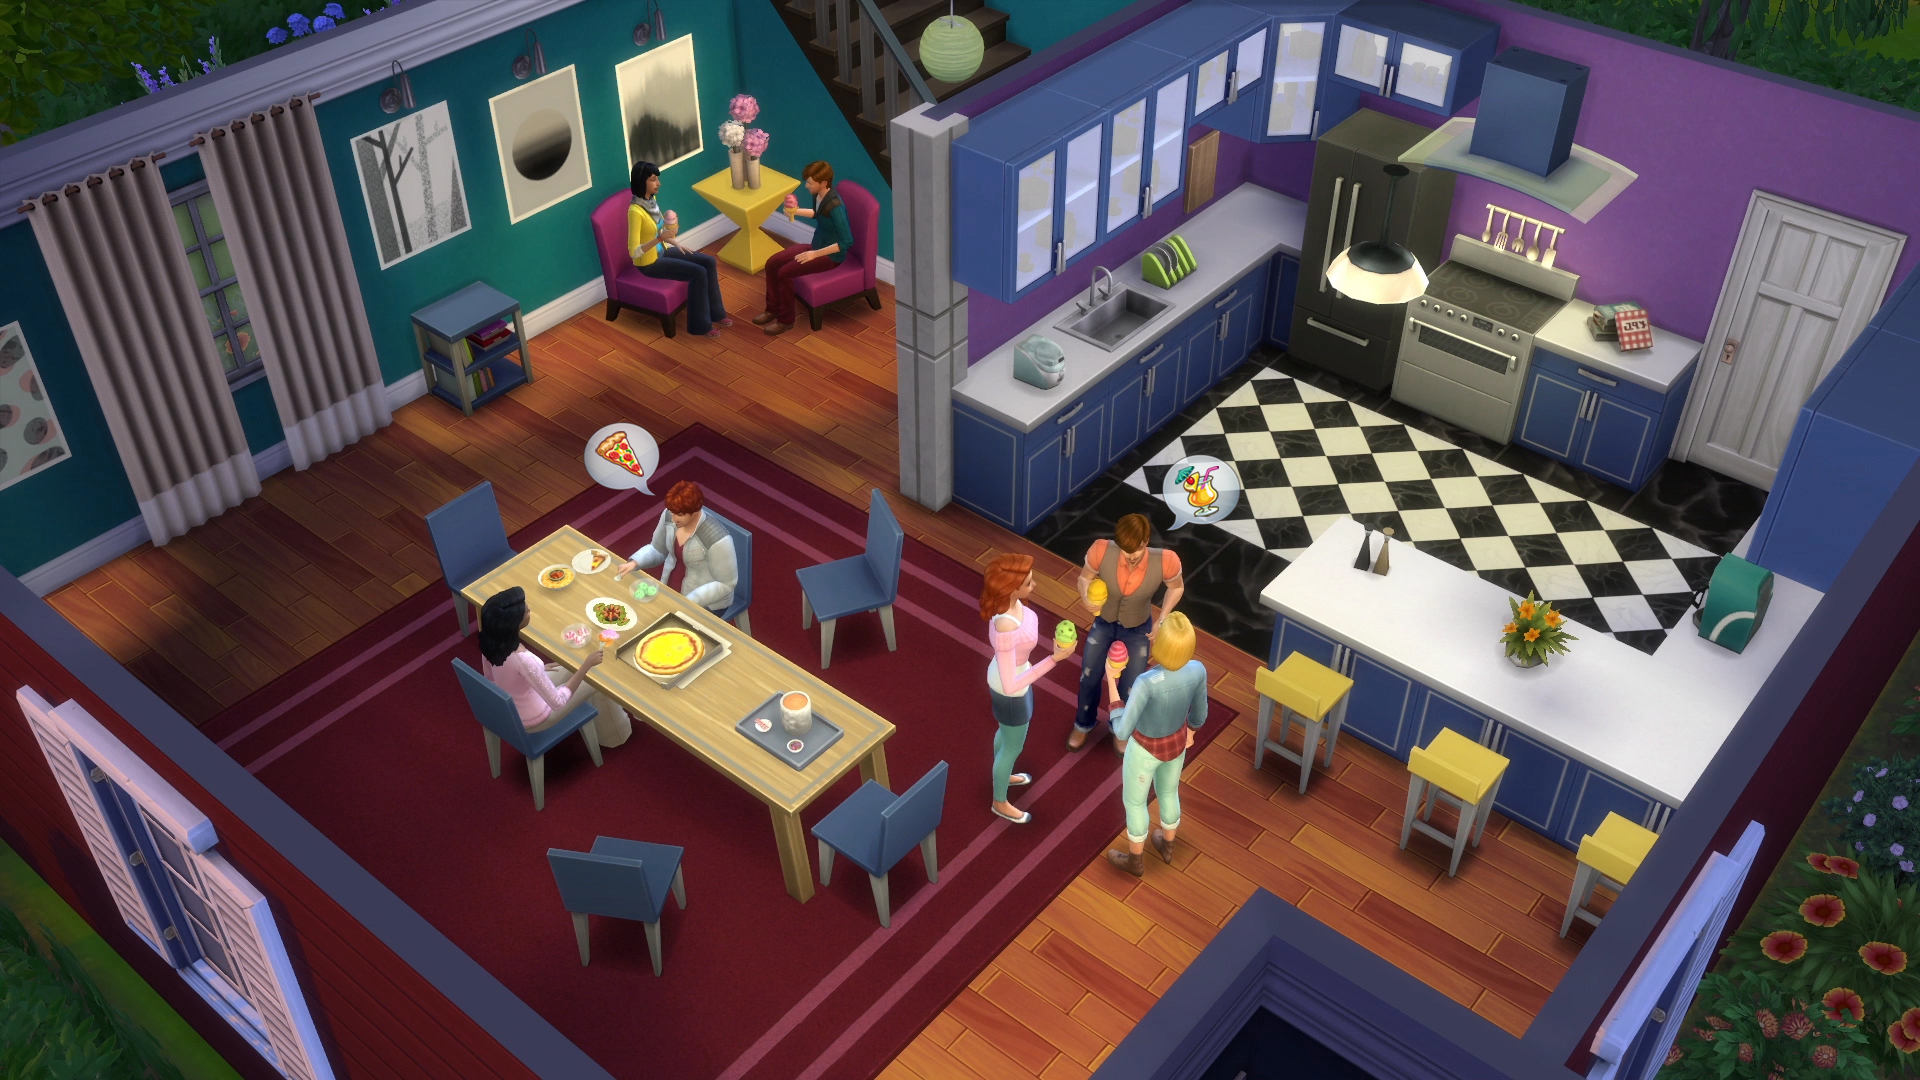 The Sims 4 Cool Kitchen New Screenshot Simsvip